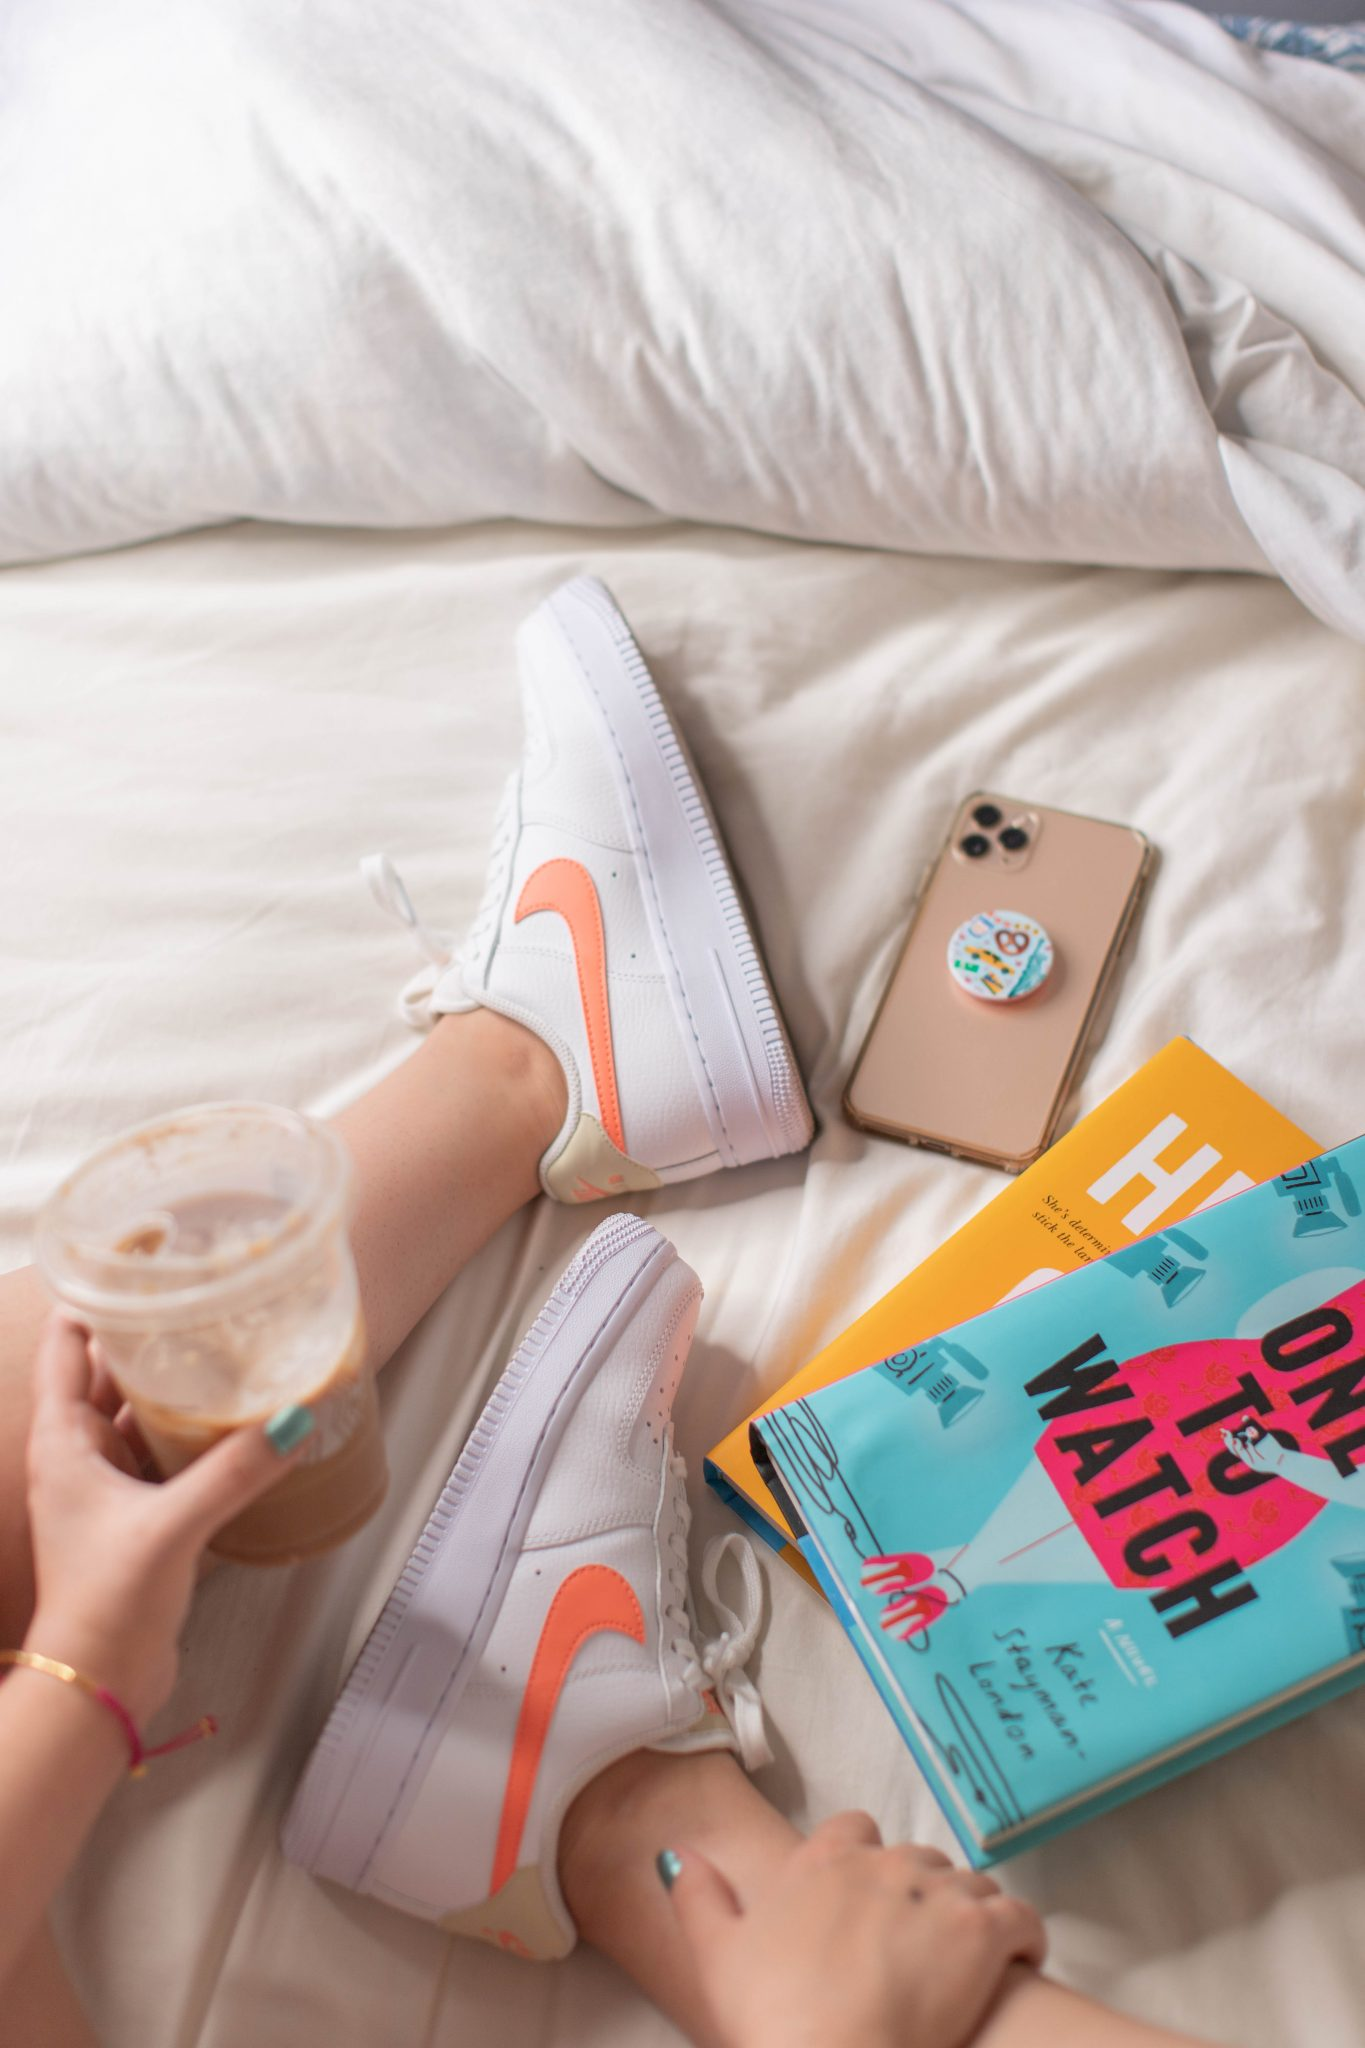 Recent Fashion and Beauty Finds by popular NYC life and style blog, Live Laugh Linda: image of Nike Air Force 1 Women sneakers and One to Watch book by Kate Stayman-London